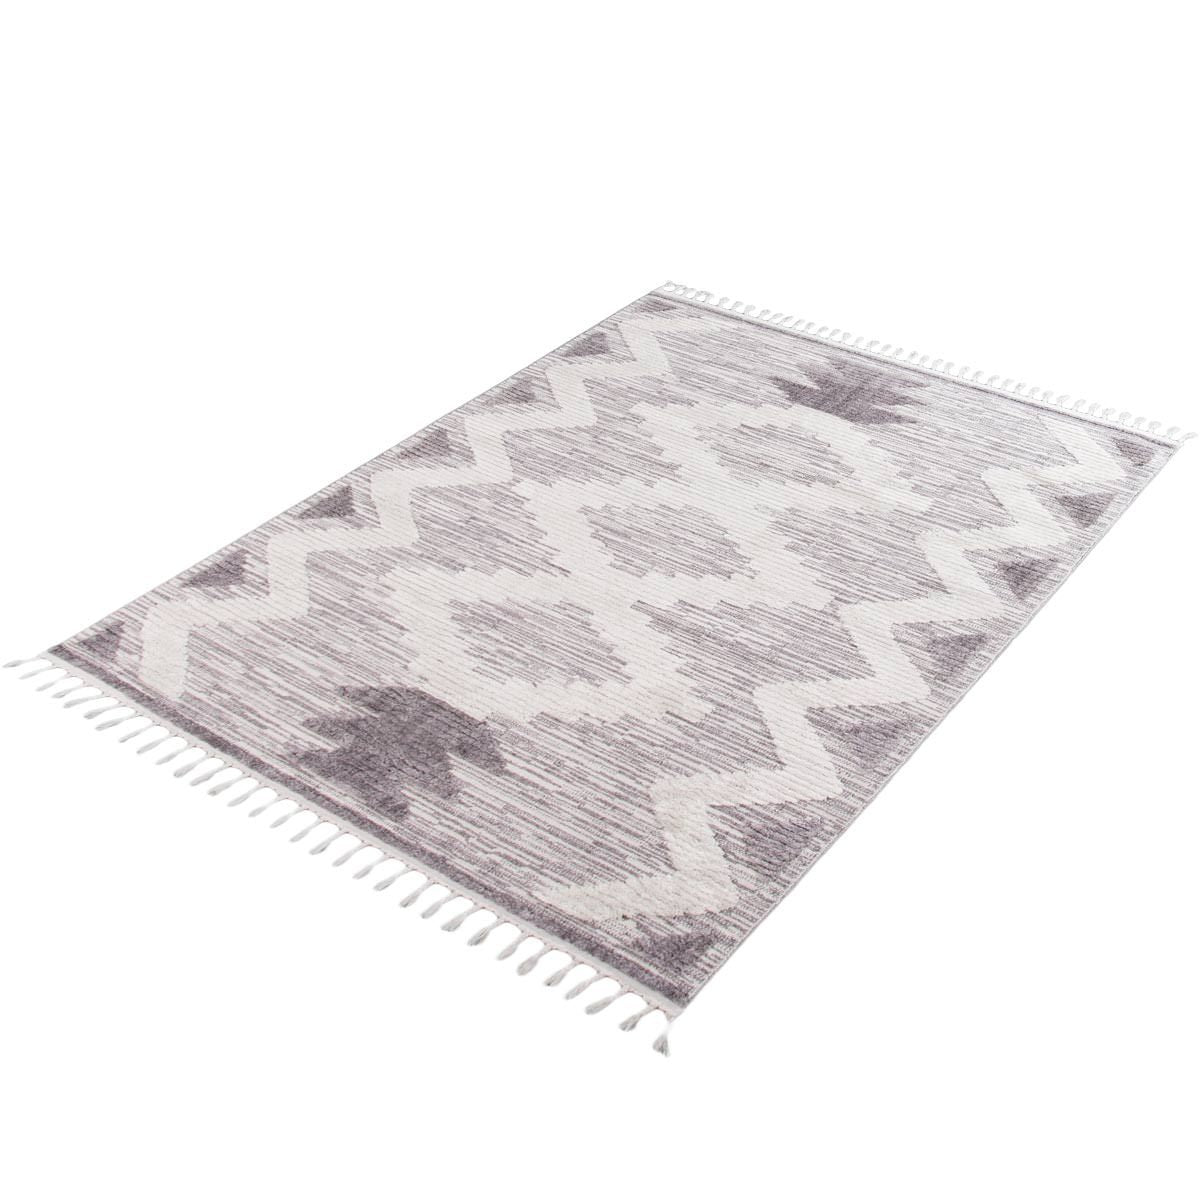 Atlas Rug 06 Grey/Cream 7